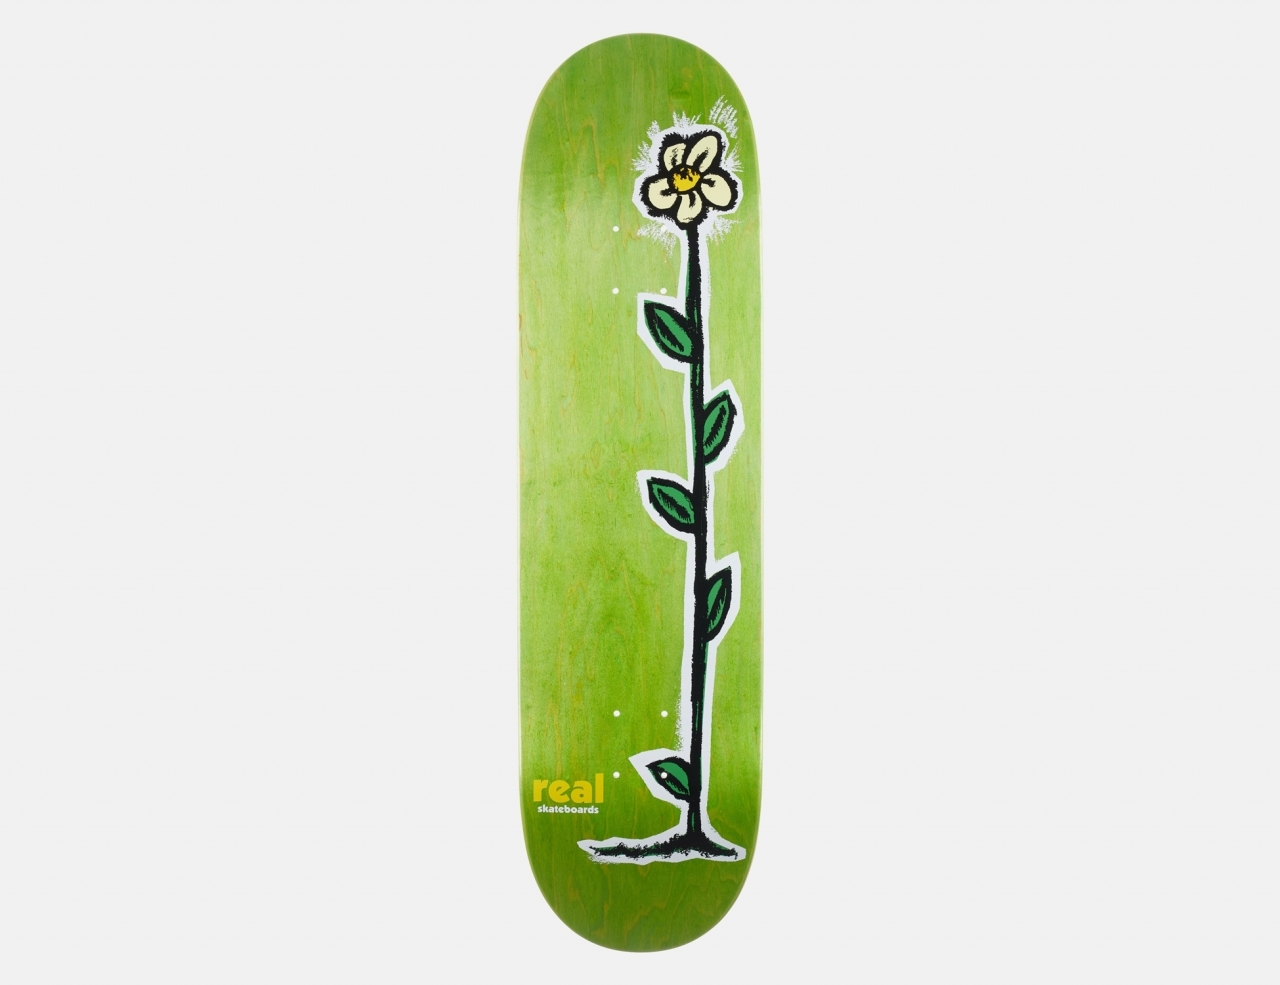 Real Team Regrowth 8.06 Deck